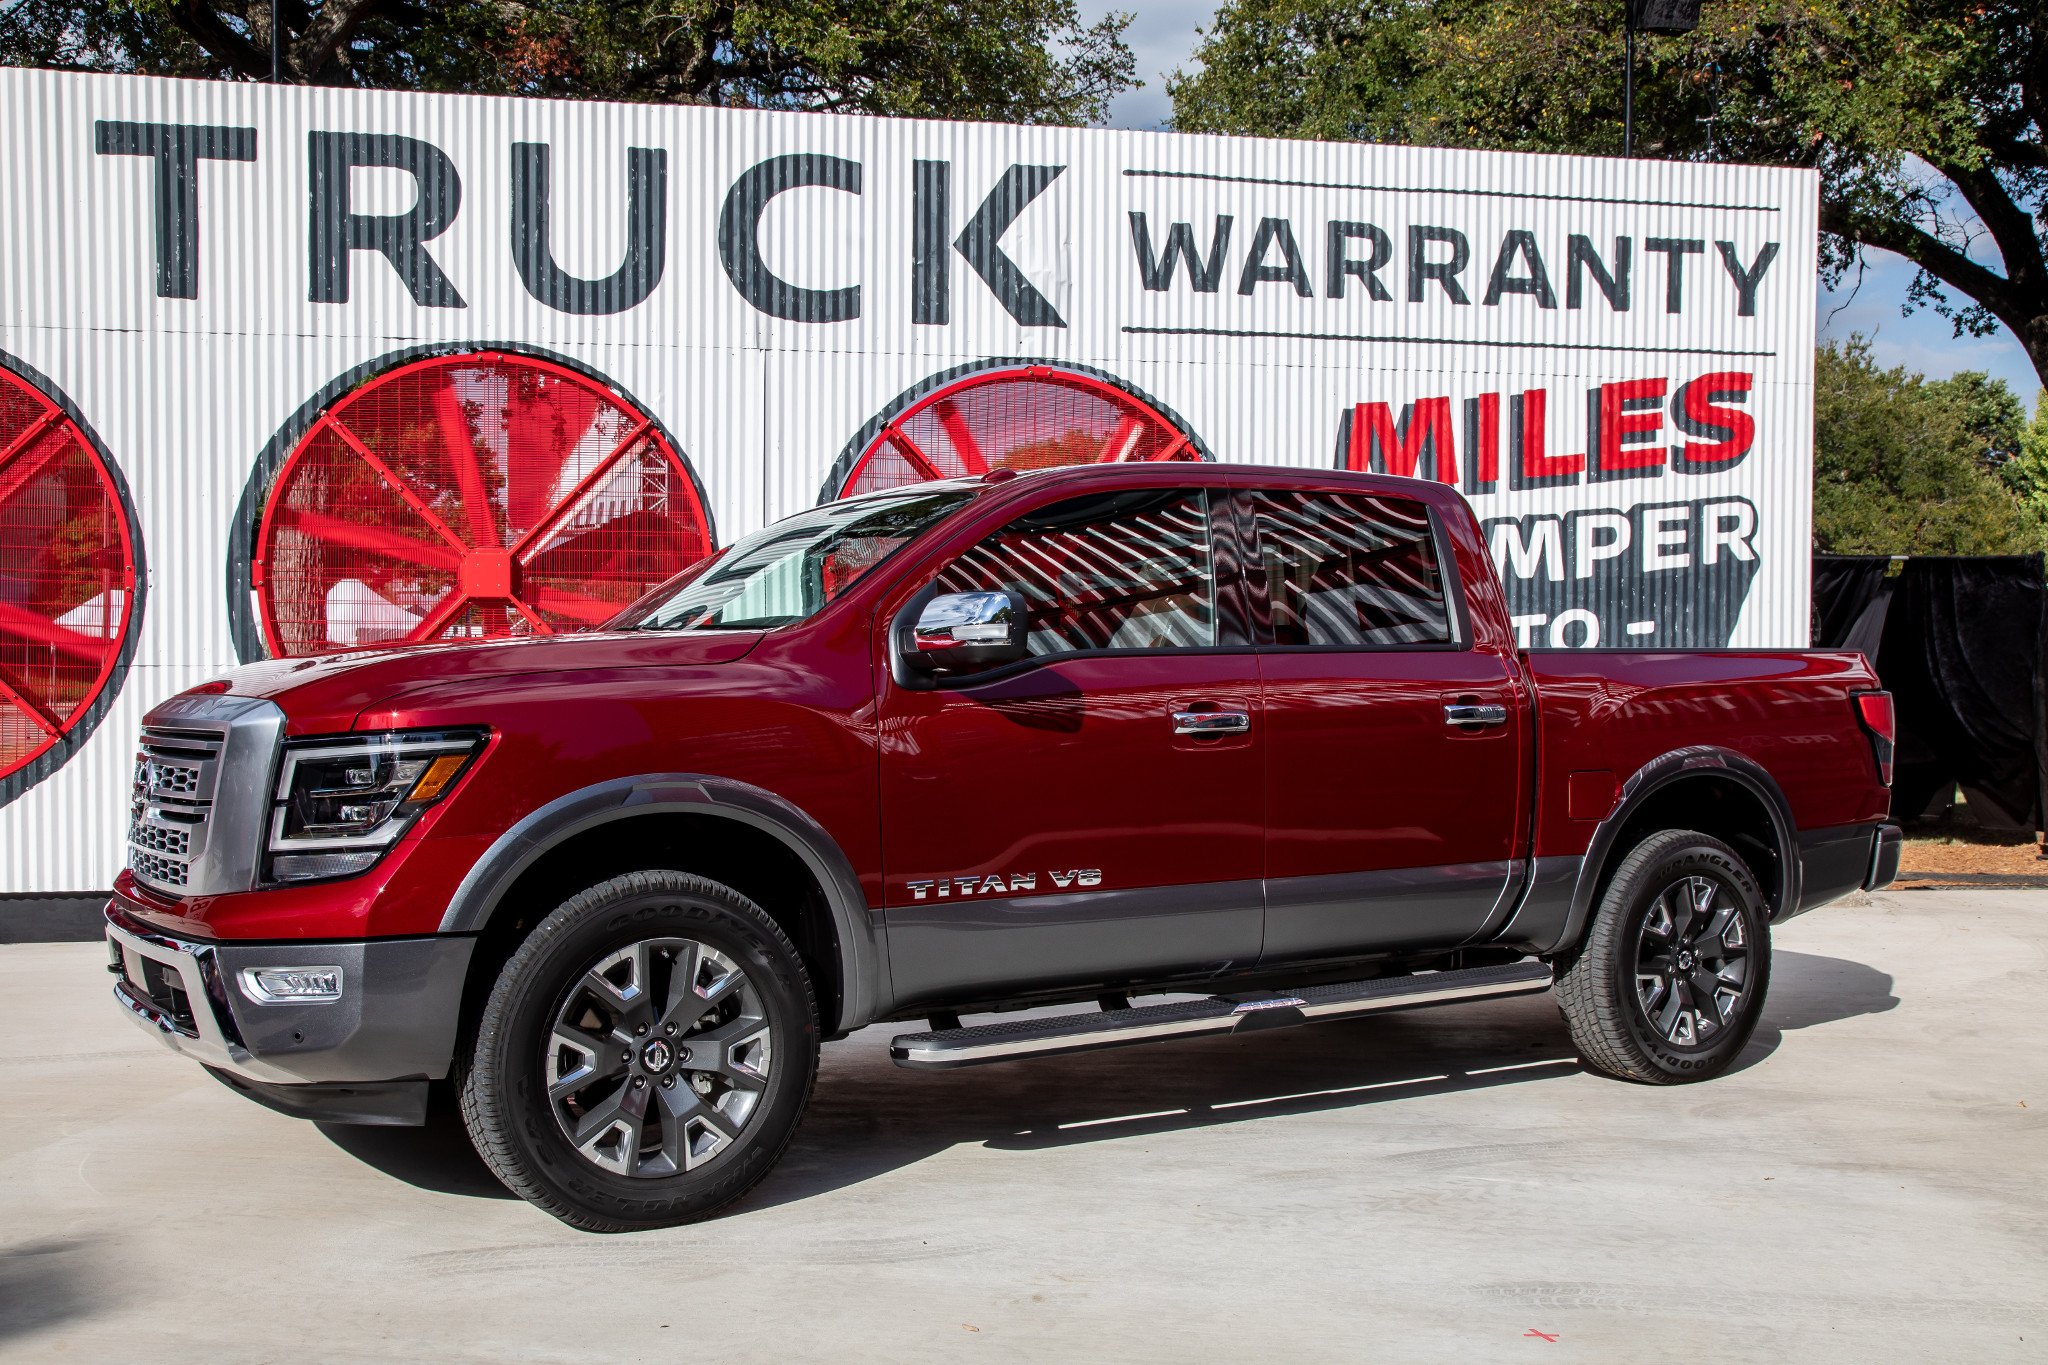 All the Pickup Truck News: 2020 Nissan Titan in Texas, Ford Takes Towing Title, Chevy and Ram Black Out and More